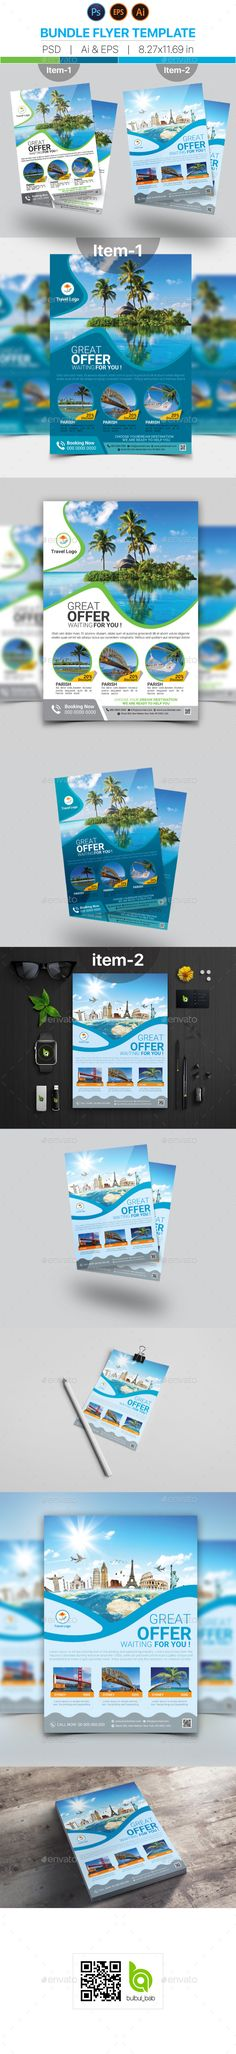 Travel Flyer Template Bundle - PSD, Vector EPS, AI Illustrator